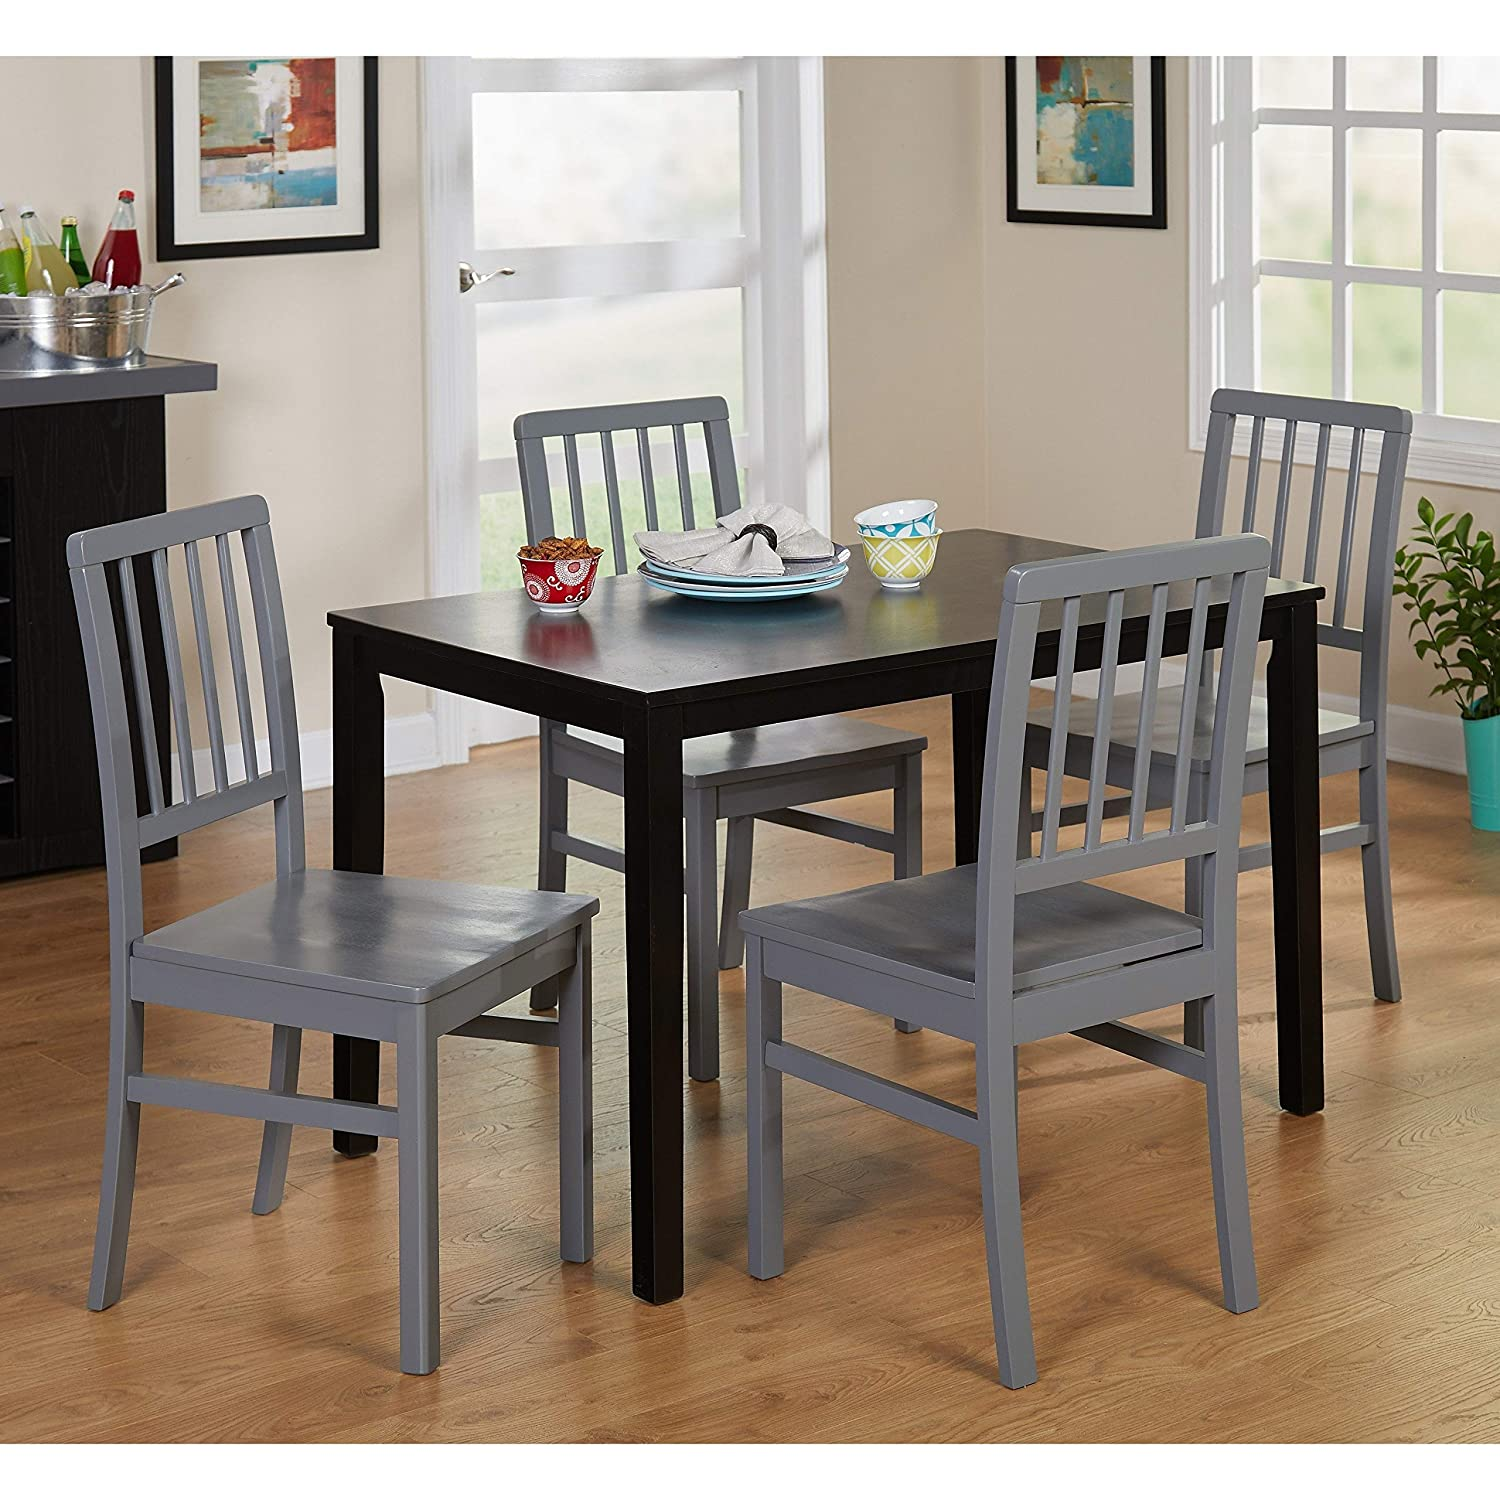 Amazon com simple living products tms camden rubberwood dining chair gray 4 pack table chair sets